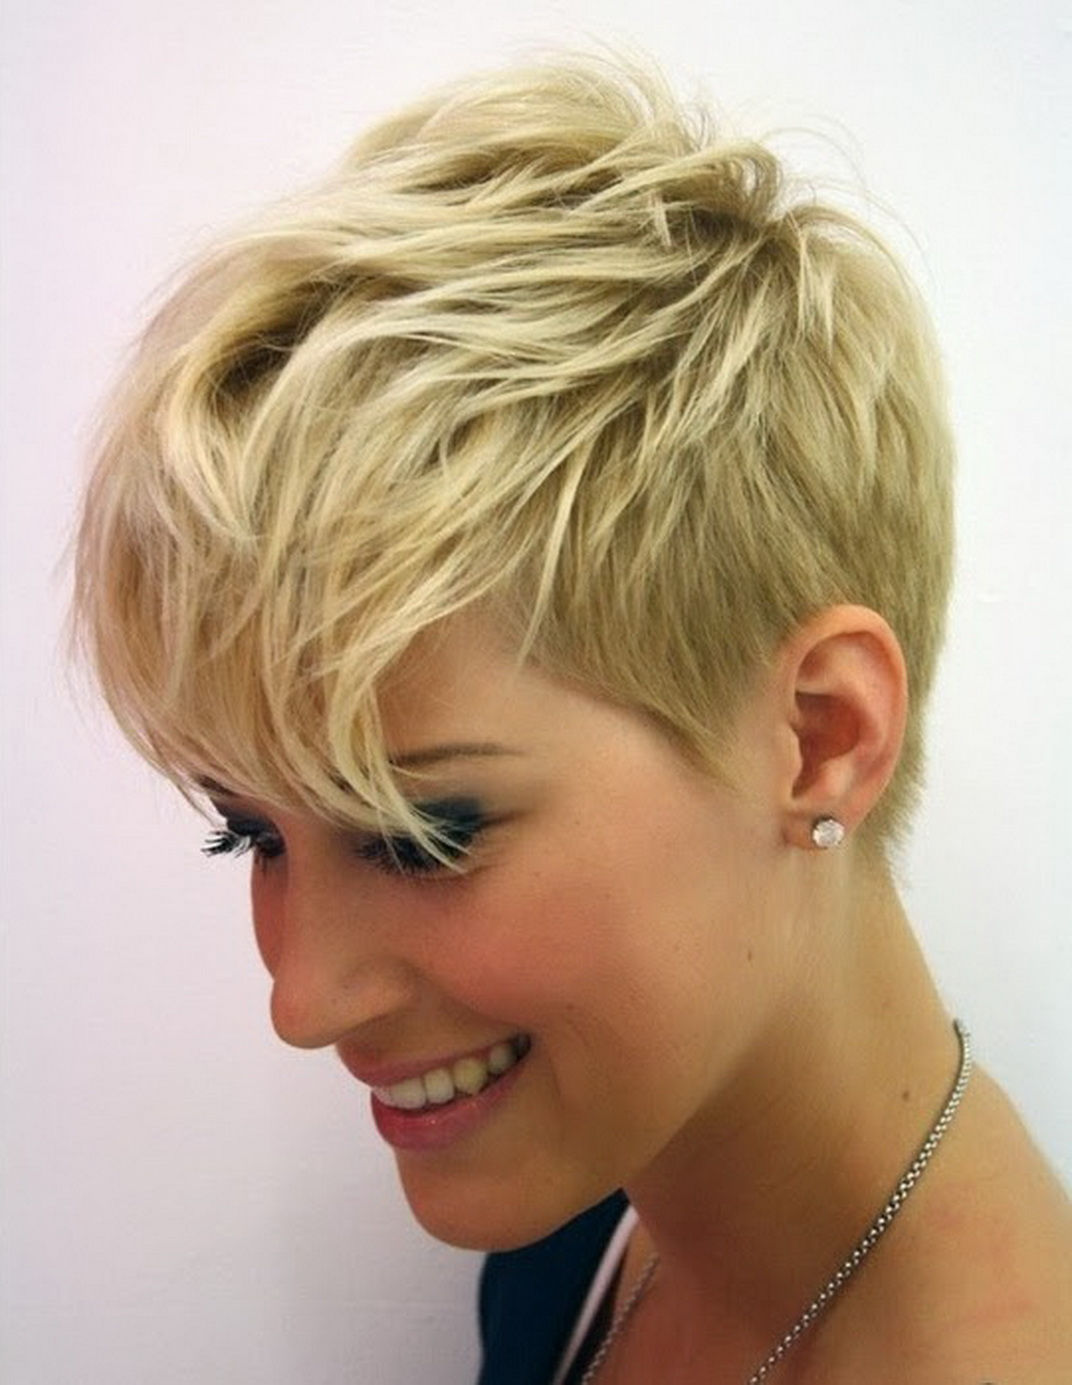 Fantastic 24 Cool Looking Short Hairstyles For Summer Styles Weekly Short Hairstyles For Black Women Fulllsitofus